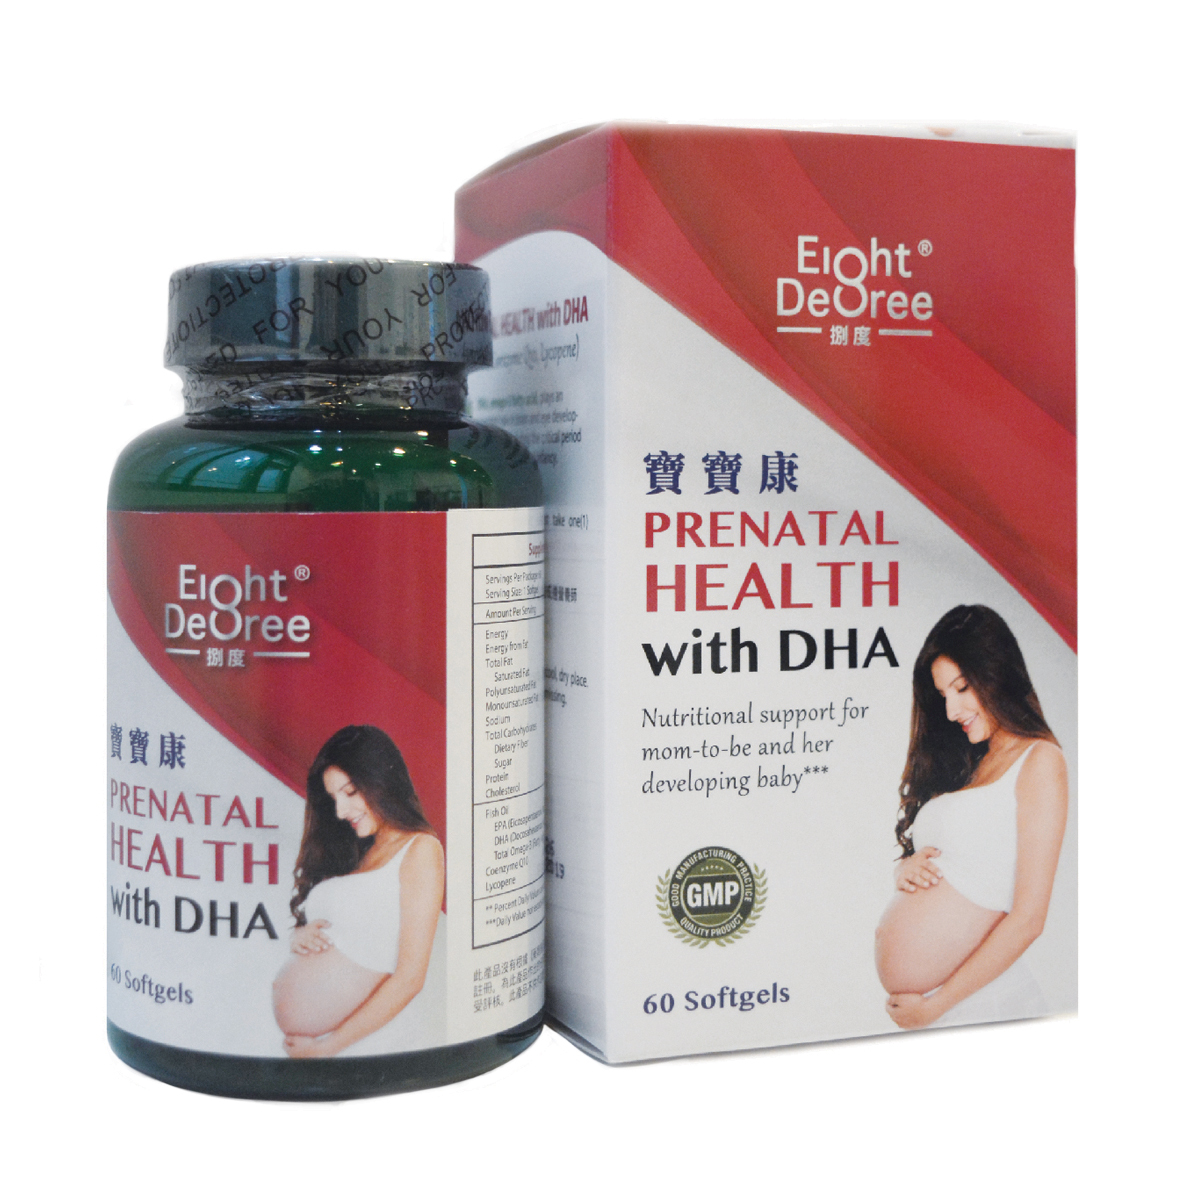 Prenatal Health with DHA